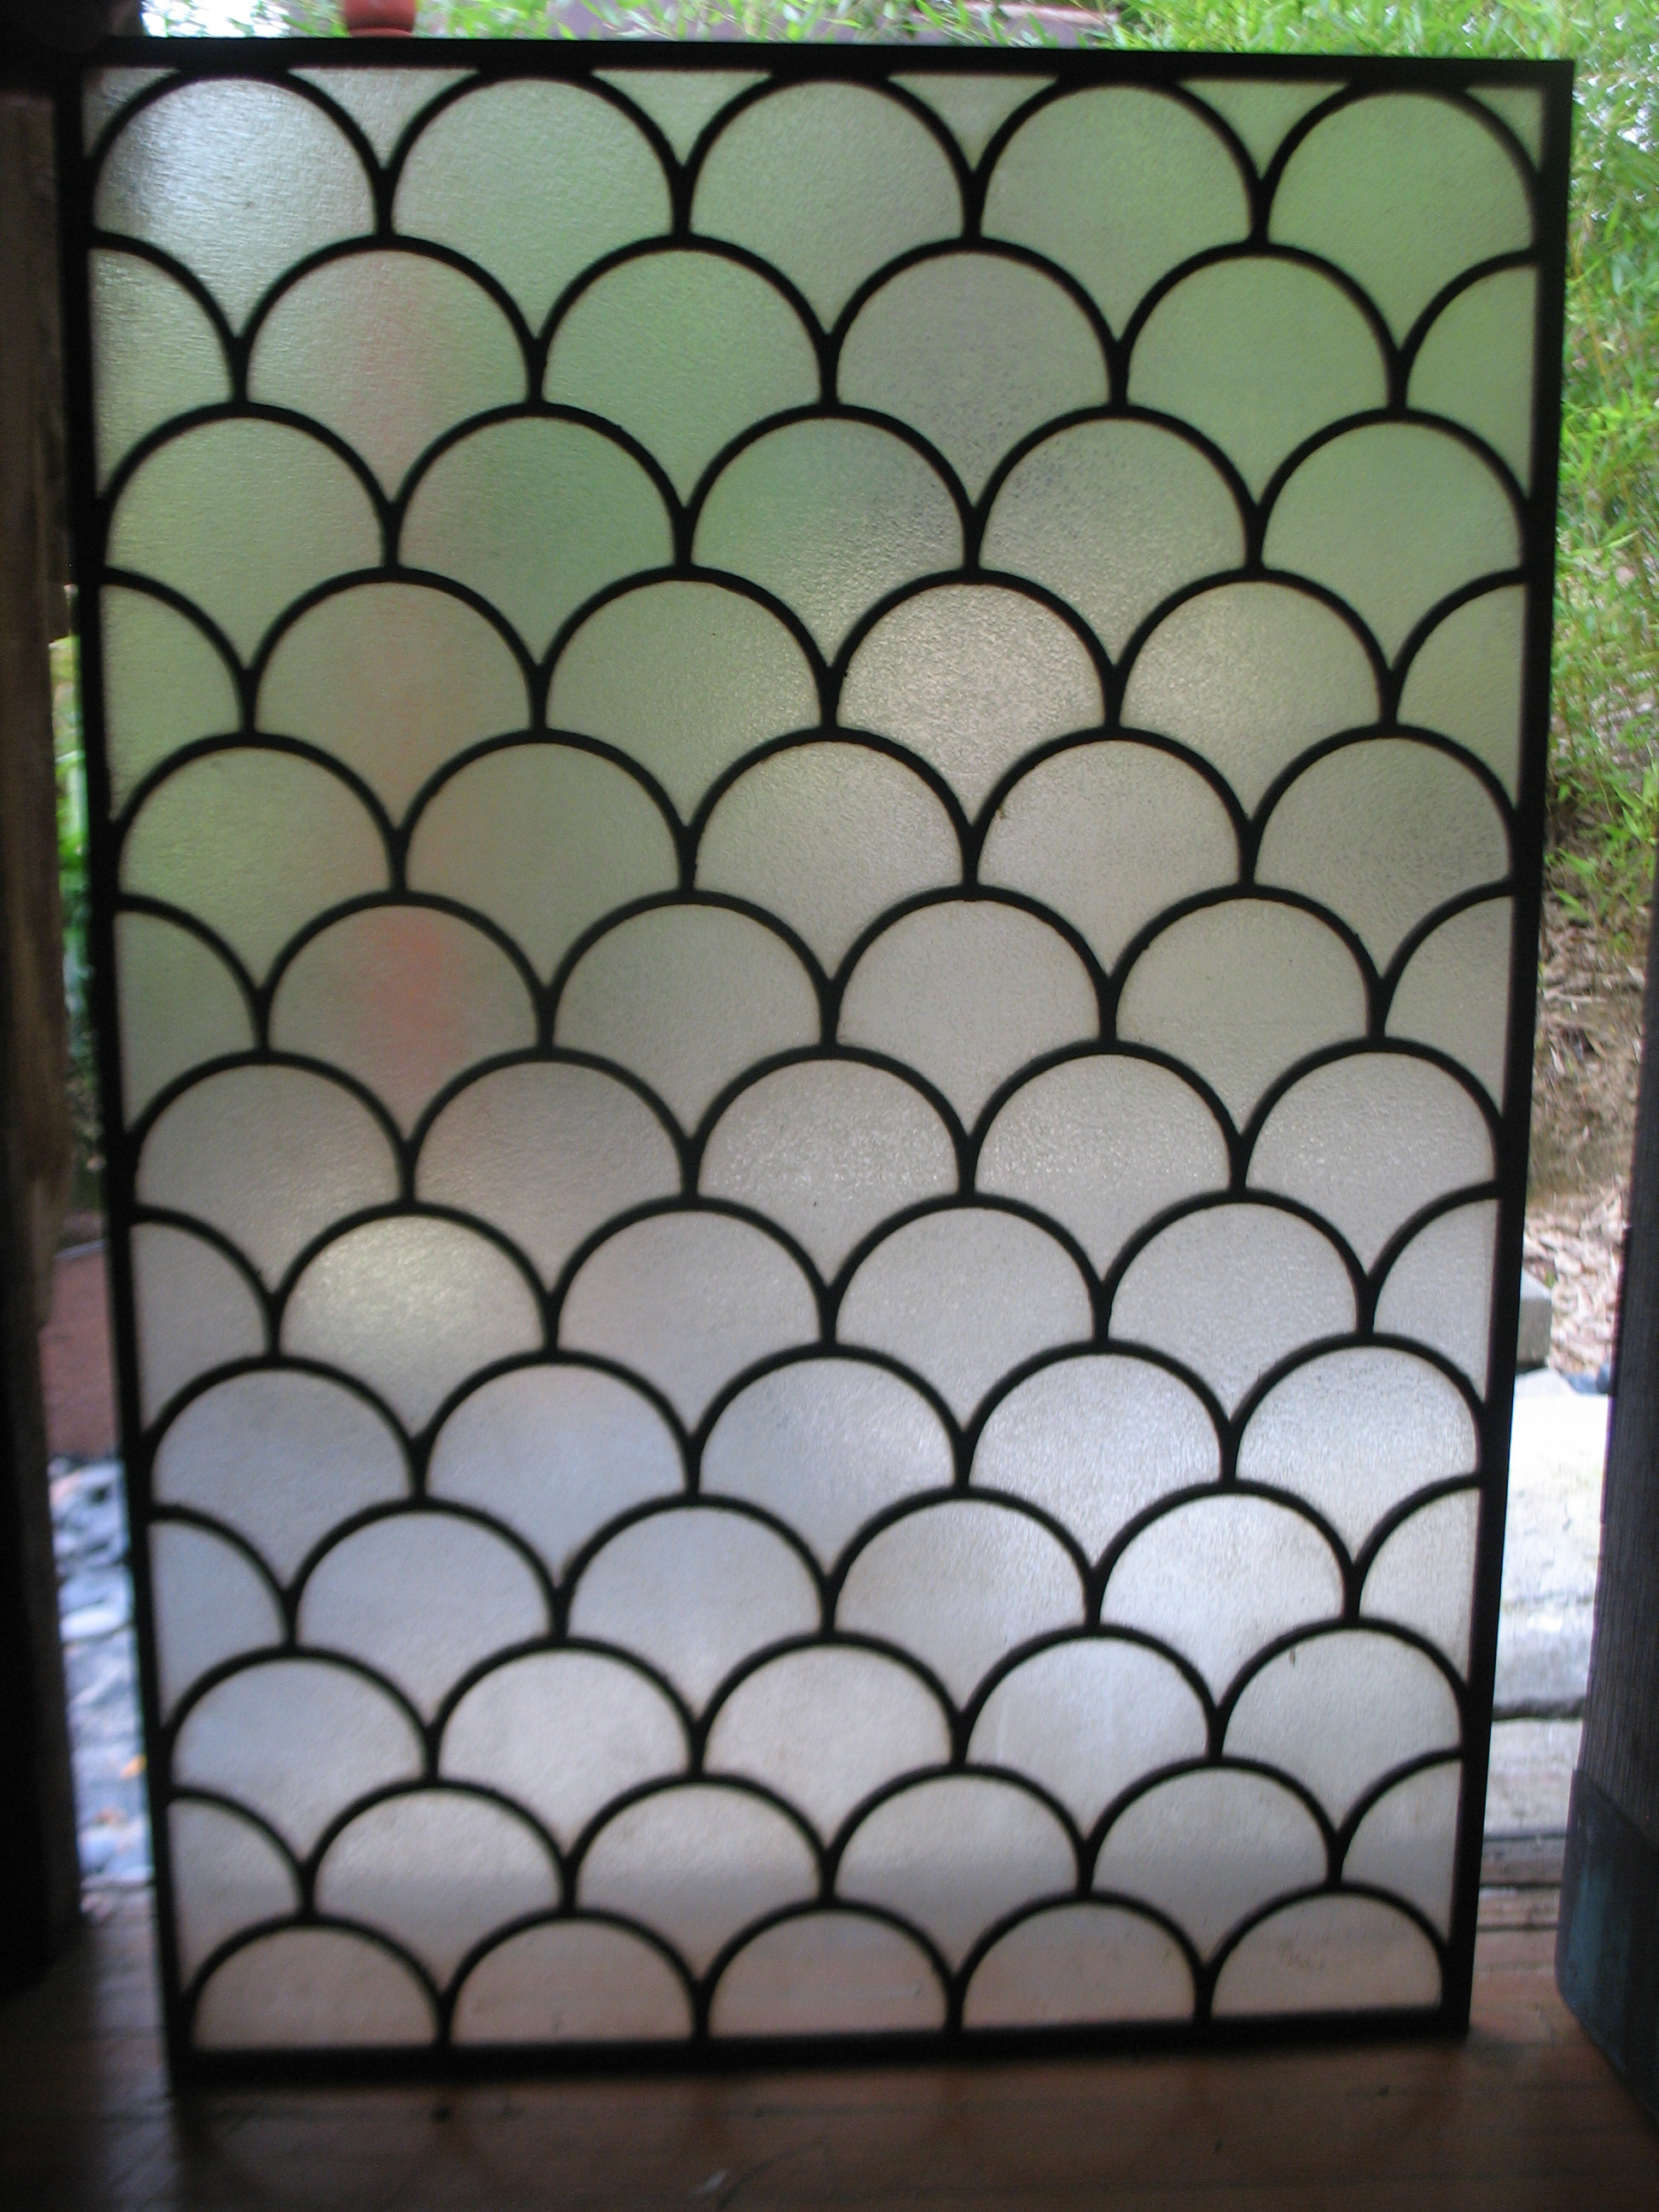 WONDERFUL WINDOWS FRAMED IN BRONZE. 4 WINDOWS 22 INCHES X 31 1/2 INCHES AND 2 WINDOWS 18 INCHES X 31 1/2 INCHES. GREAT FOR BATHROOM AS THEY ARE OPAQUE AND PRIVATE.